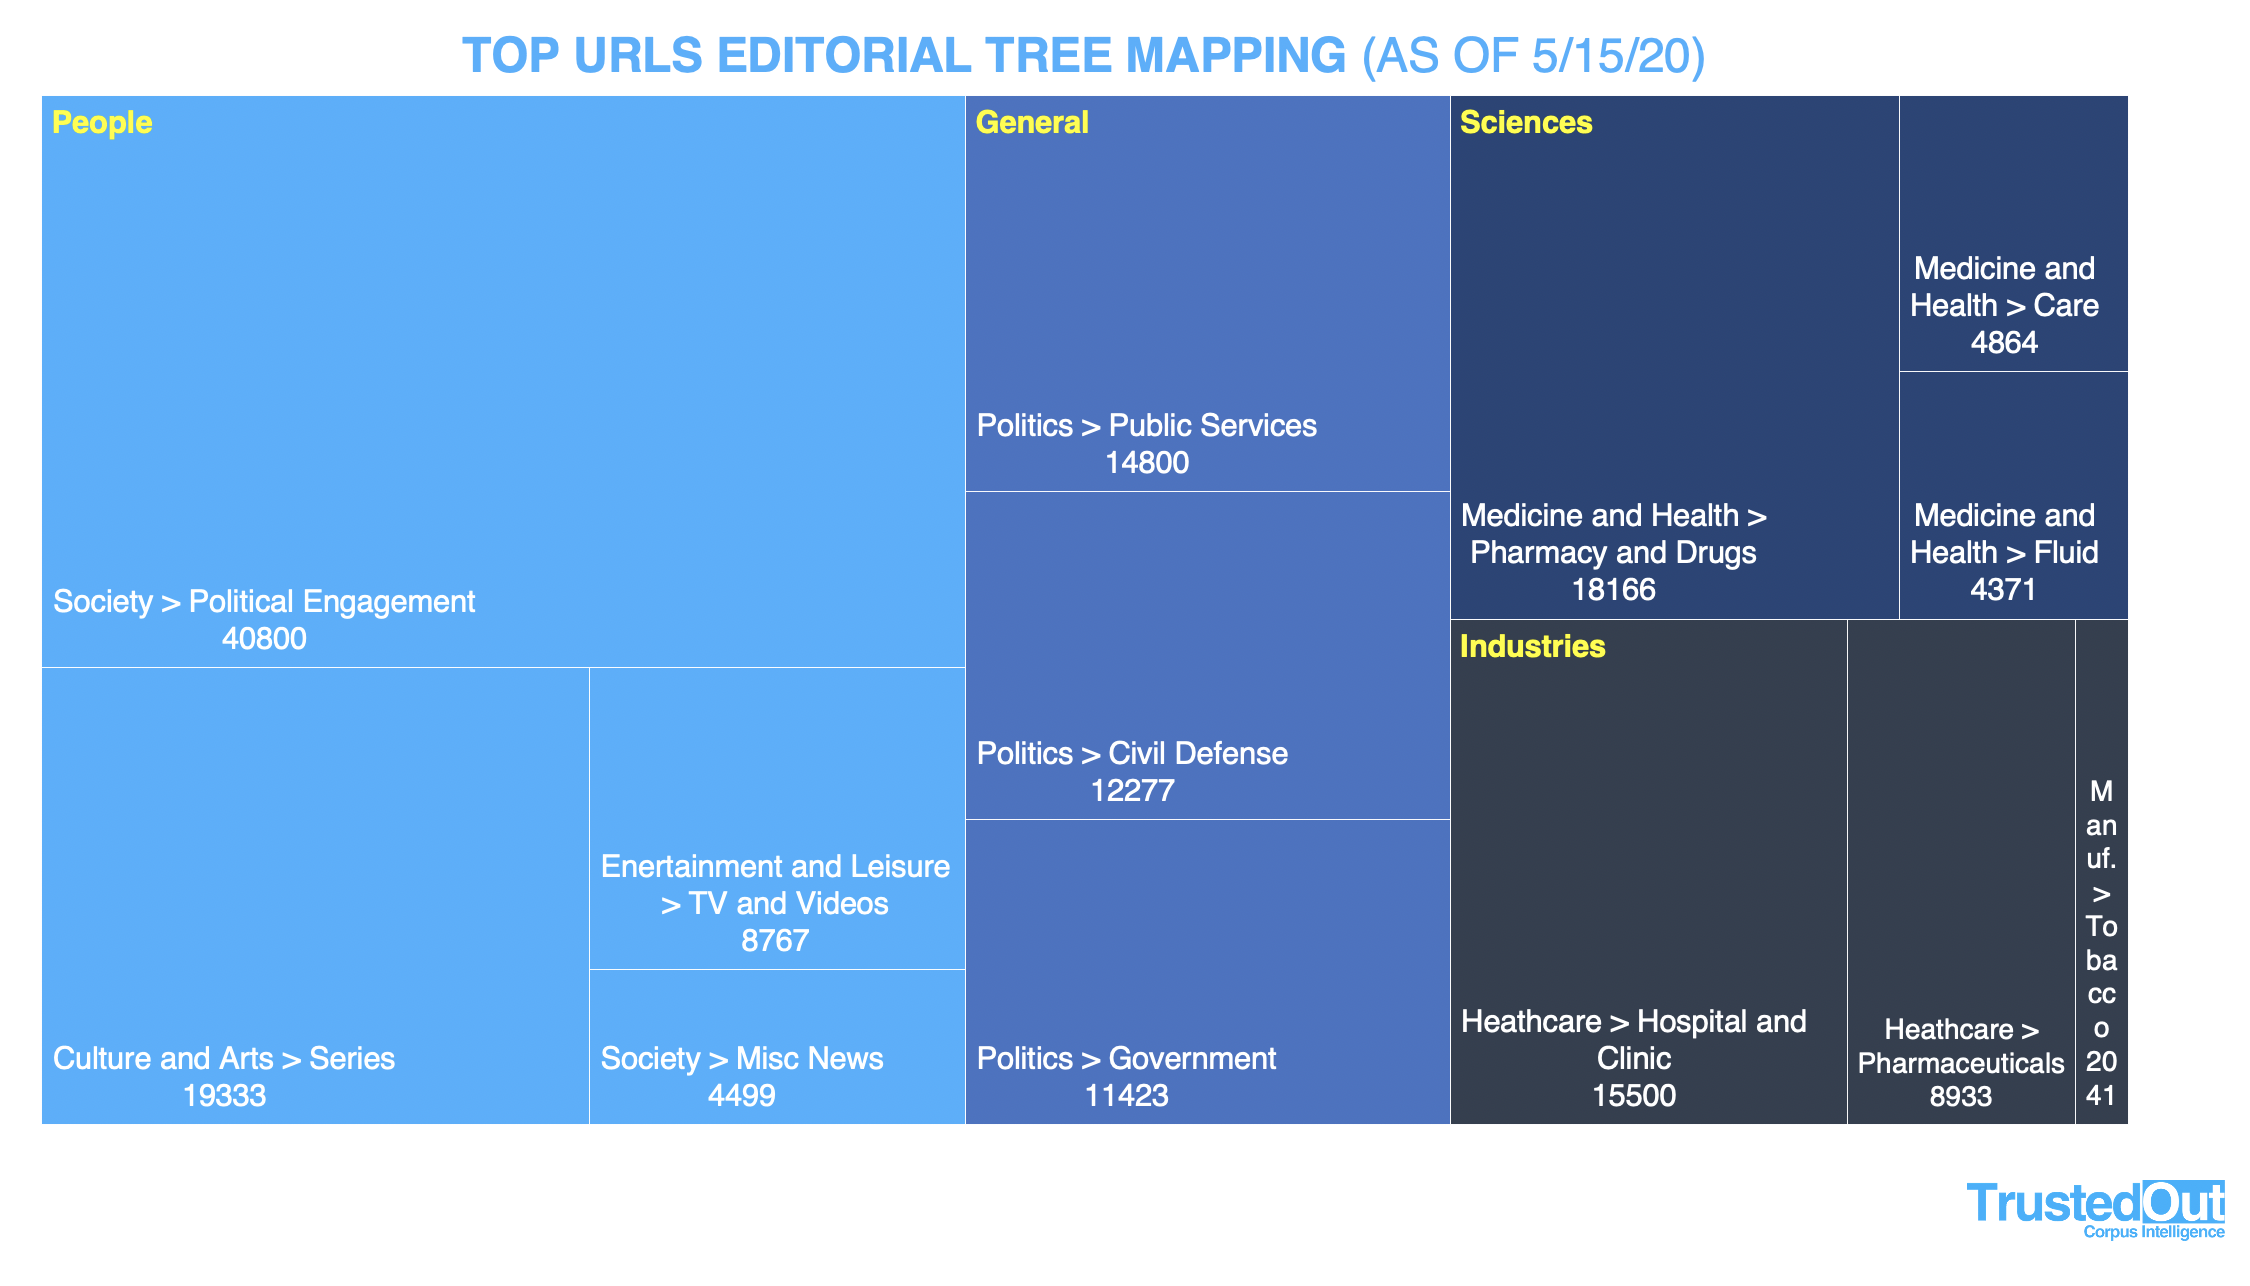 TrustedOut Editorial Tree Mapping